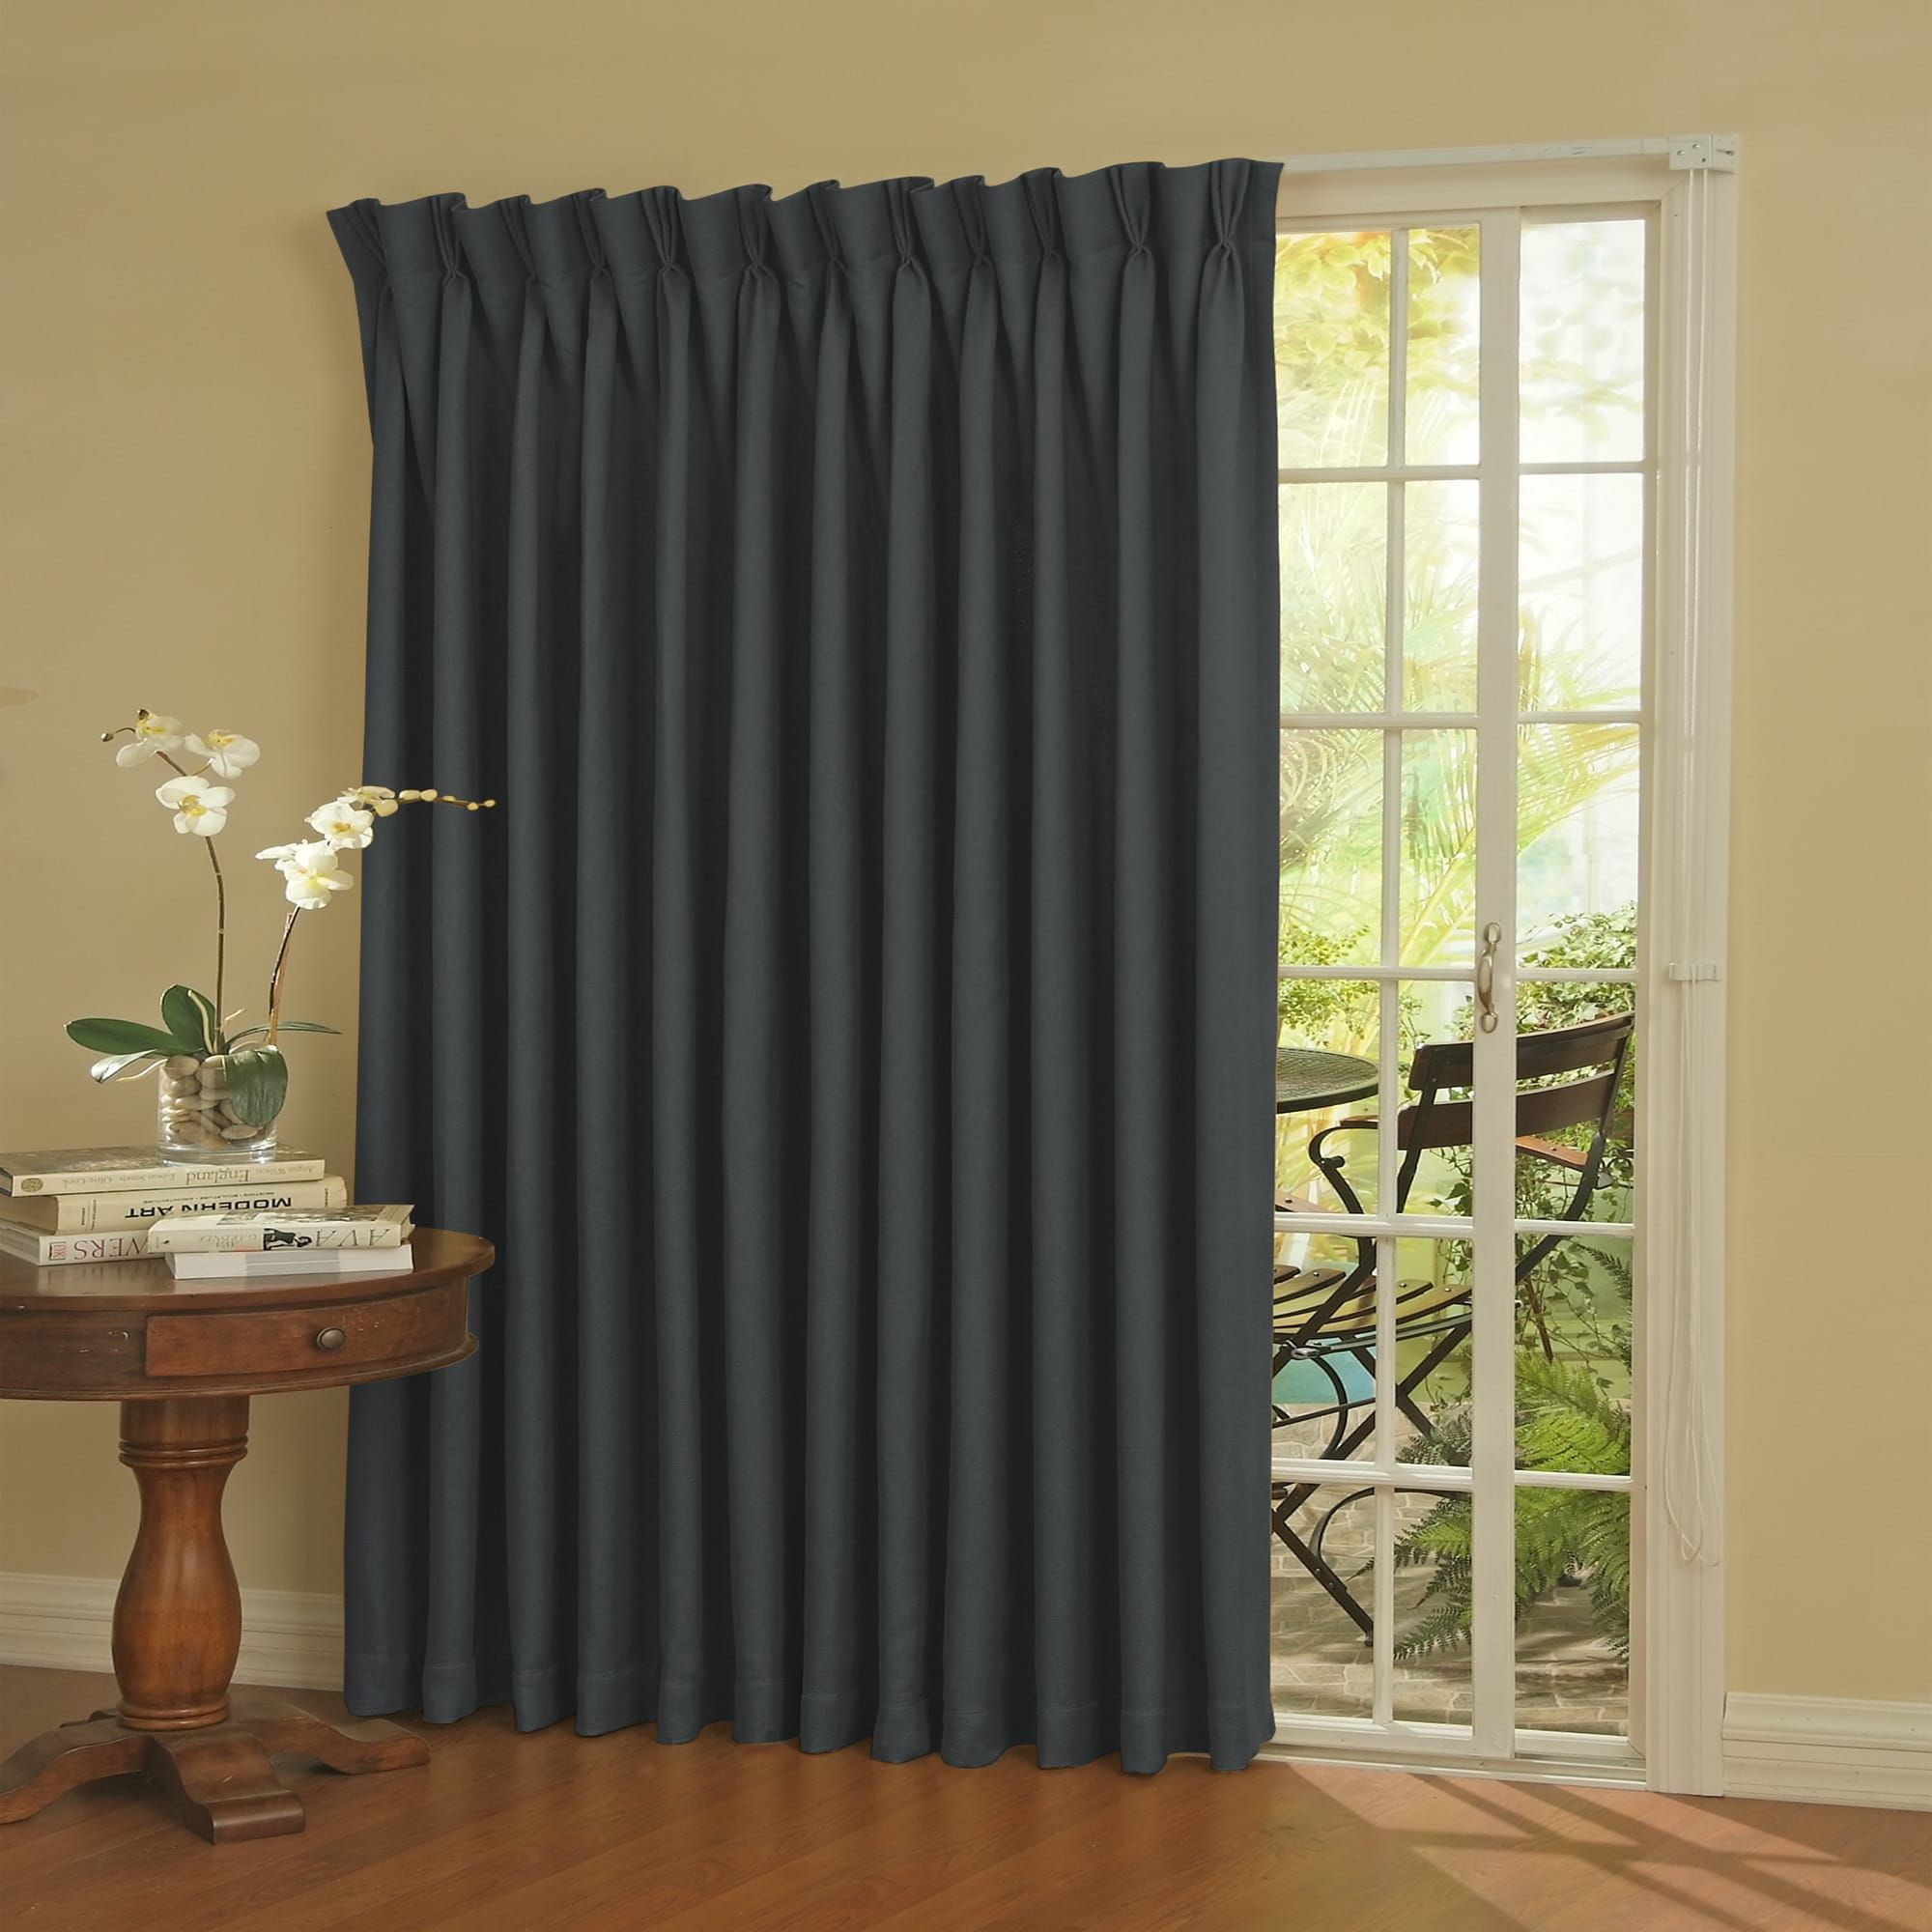 Eclipse Thermal Blackout Patio Door Curtain Panel 100 X 84 Patio Door Curtains Door Curtains Panel Curtains